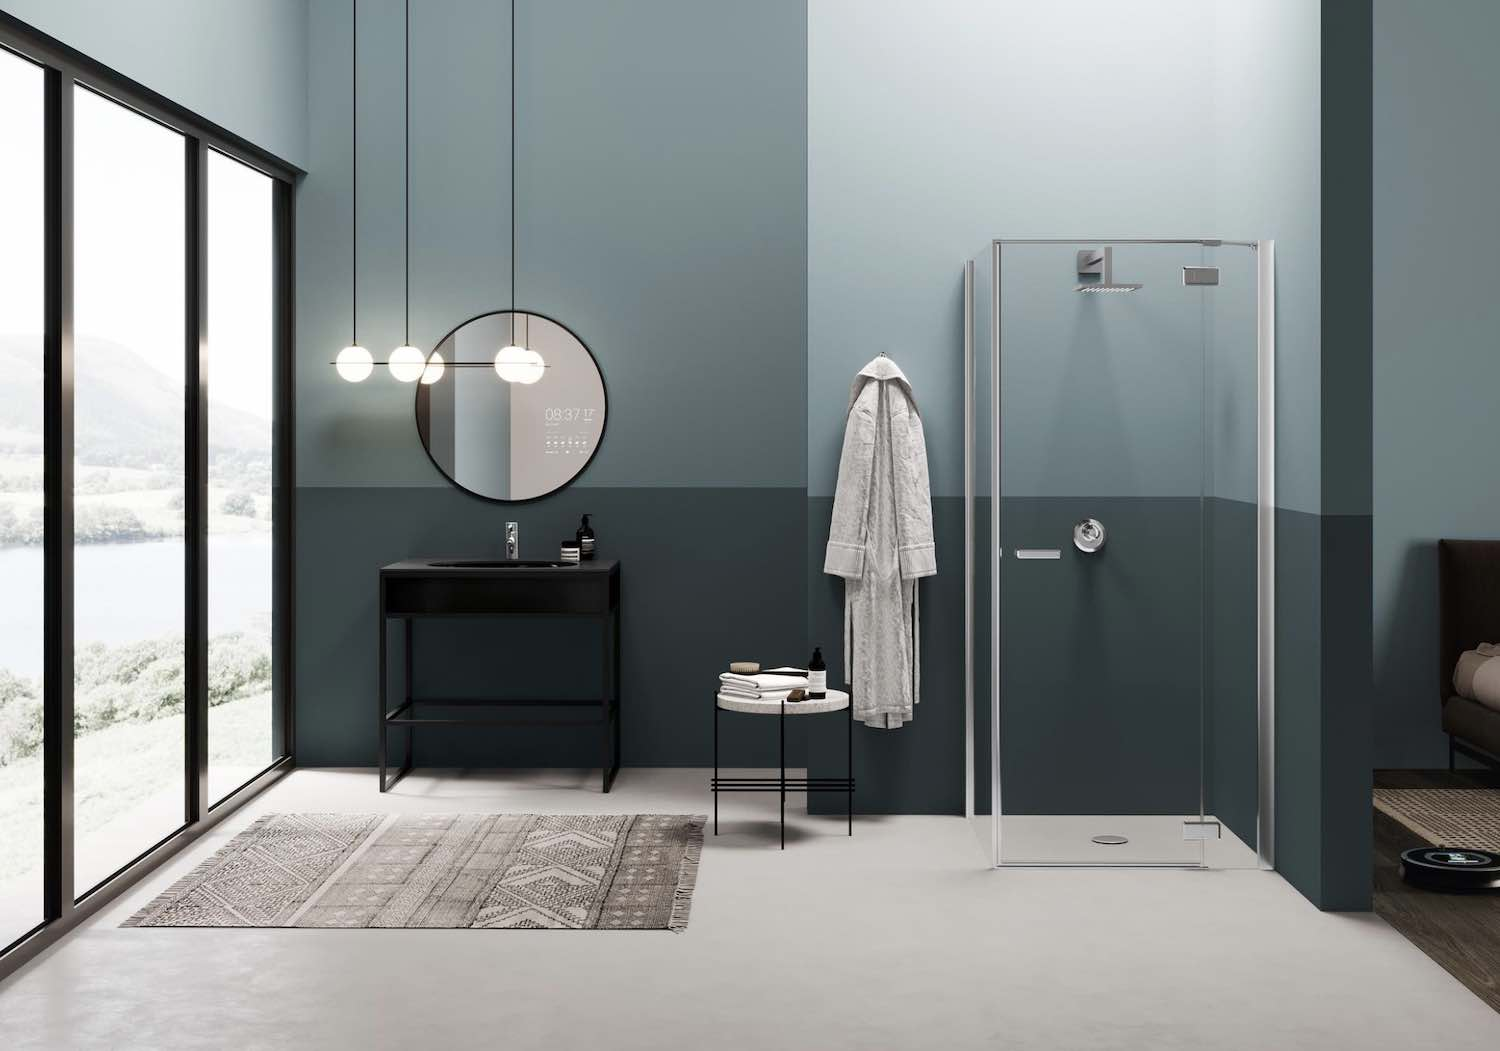 Cersaie 2019 - Gallery 3000 by Duka - Image courtesy of Duka